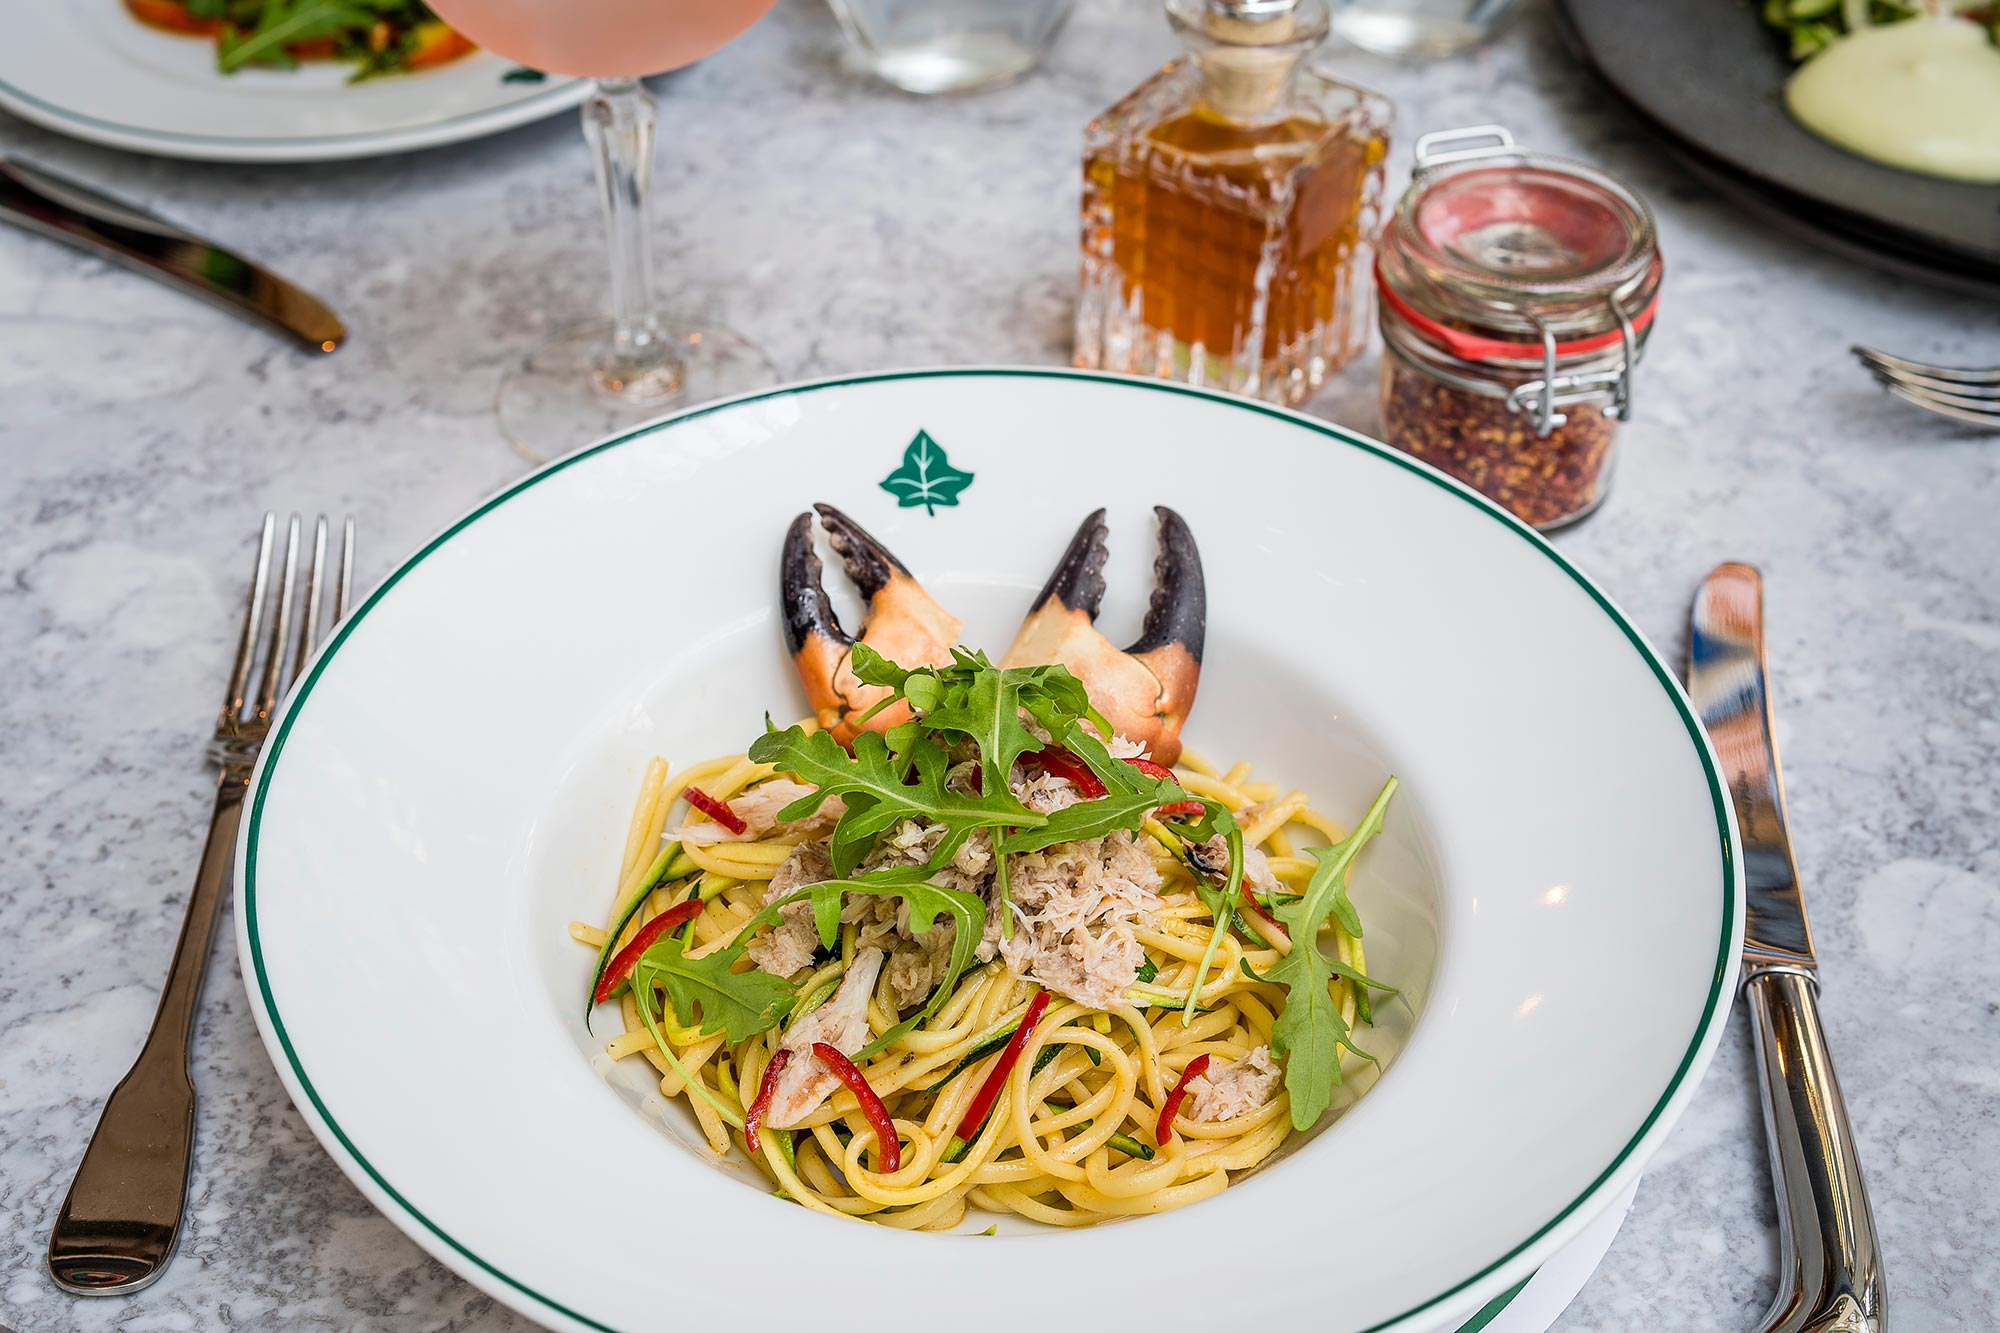 Crab Linguine at The Ivy Marlow Garden - The Ivy Marlow Garden